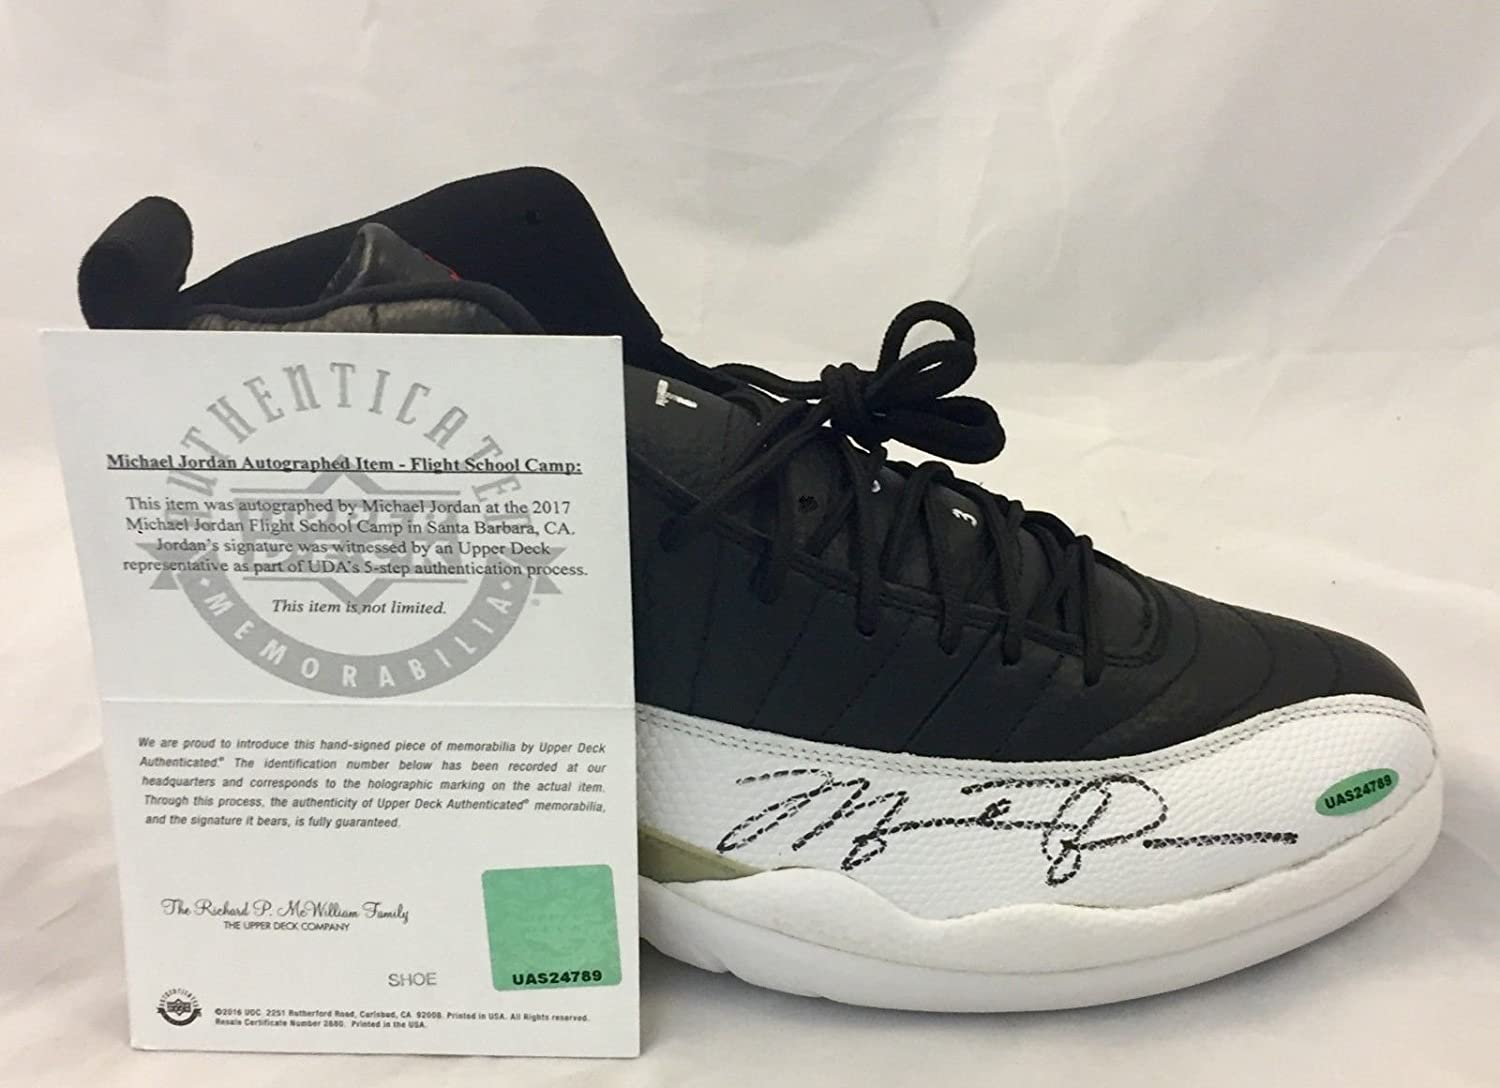 3ad9a3758a79 Autographed Michael Jordan Signed Air Jordan 12 Shoe Upper Deck  Certifiedated Uas24789 at Amazon s Sports Collectibles Store